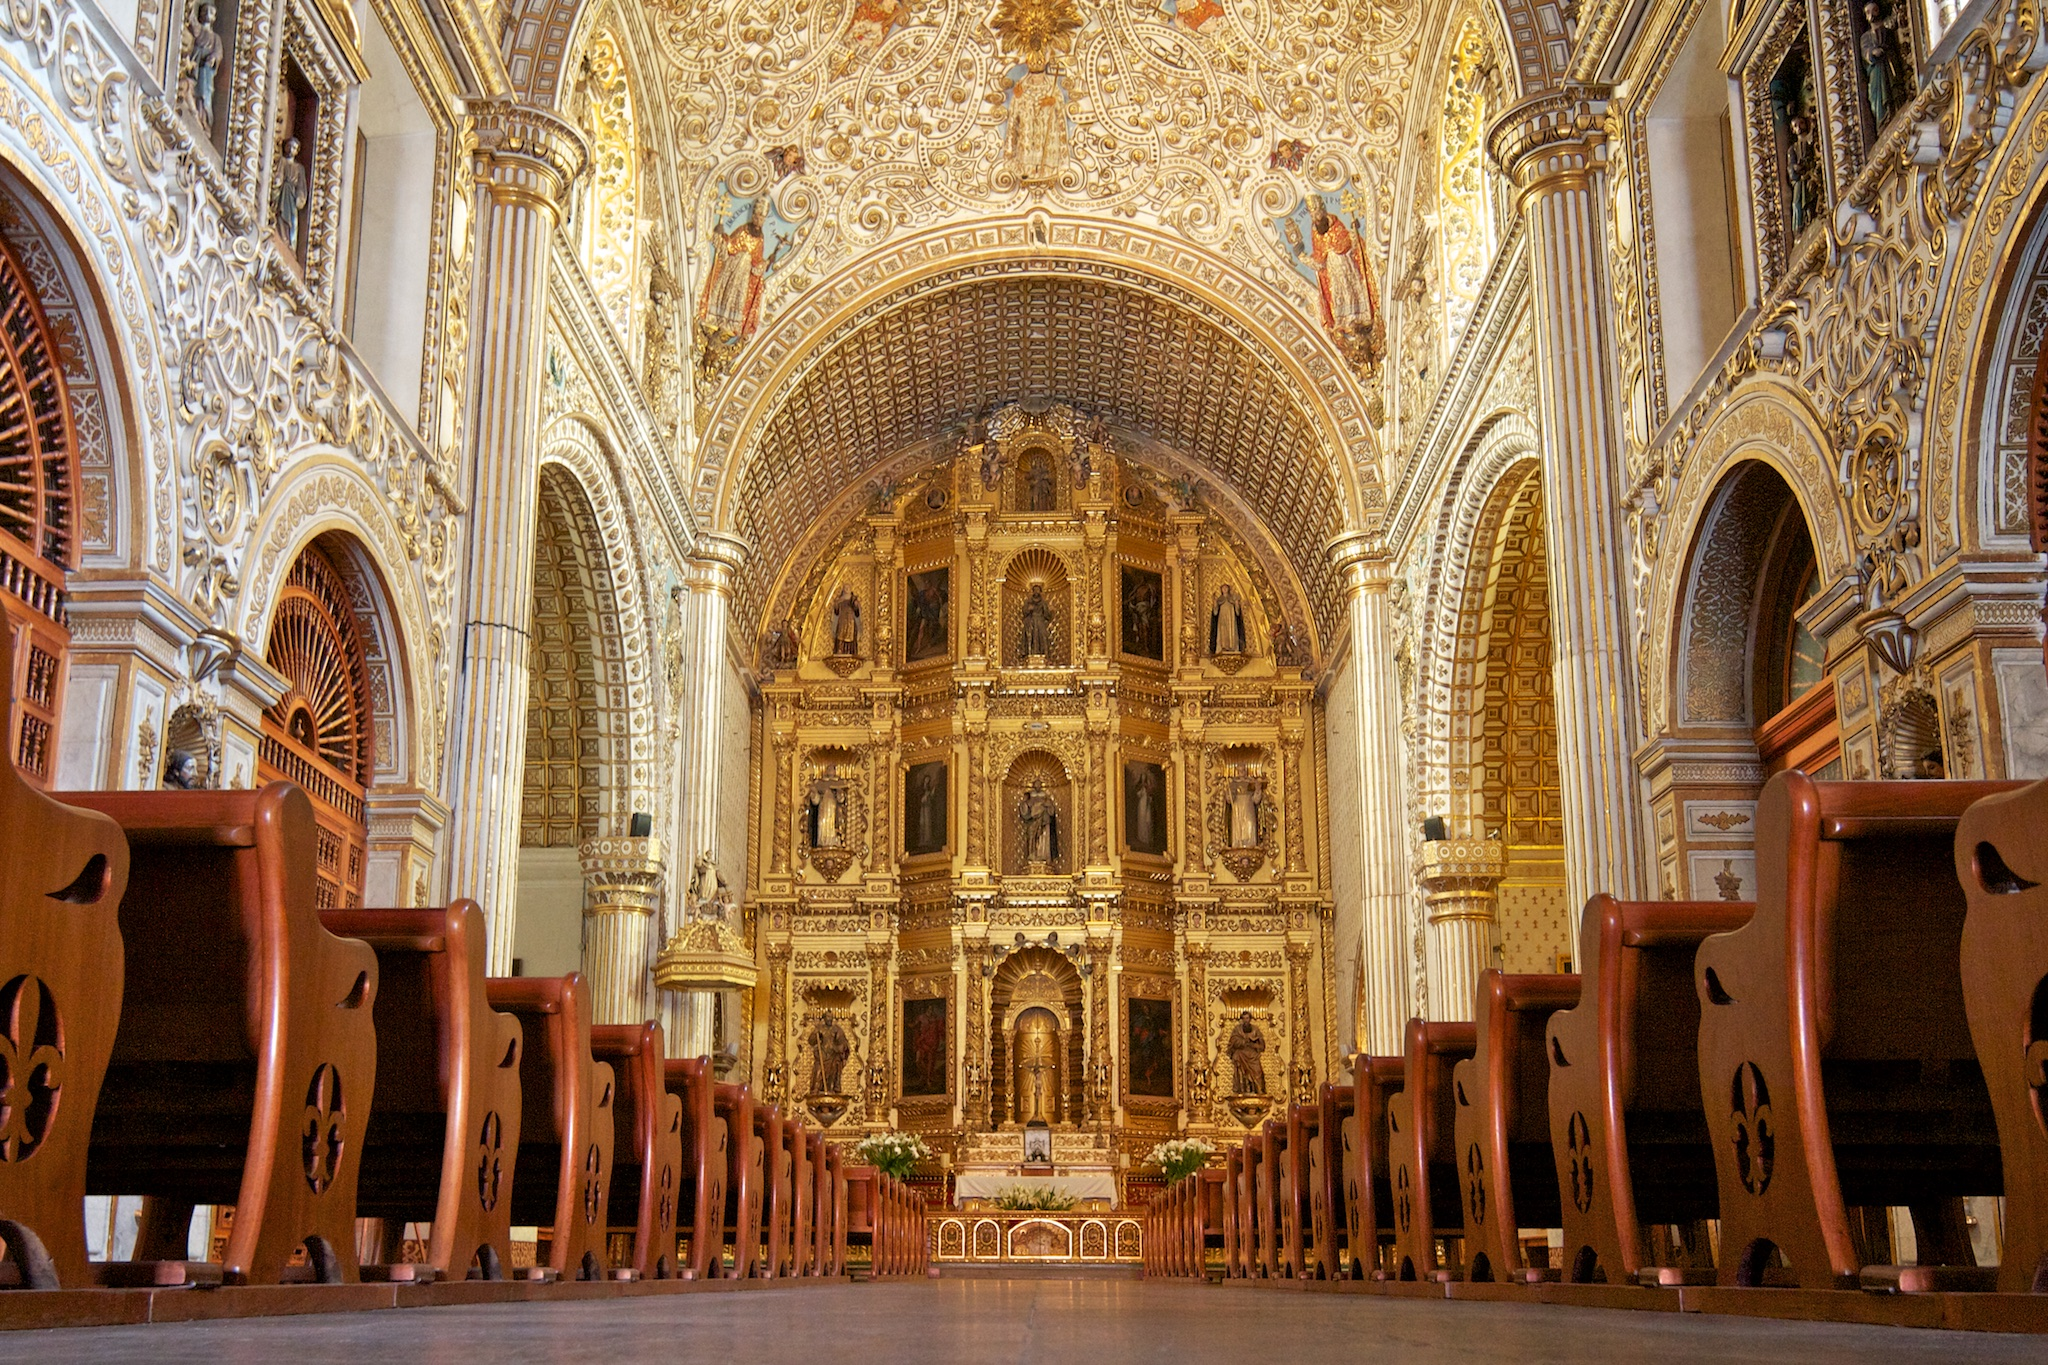 Grand altar of adjacent Templo de Santo Domingo